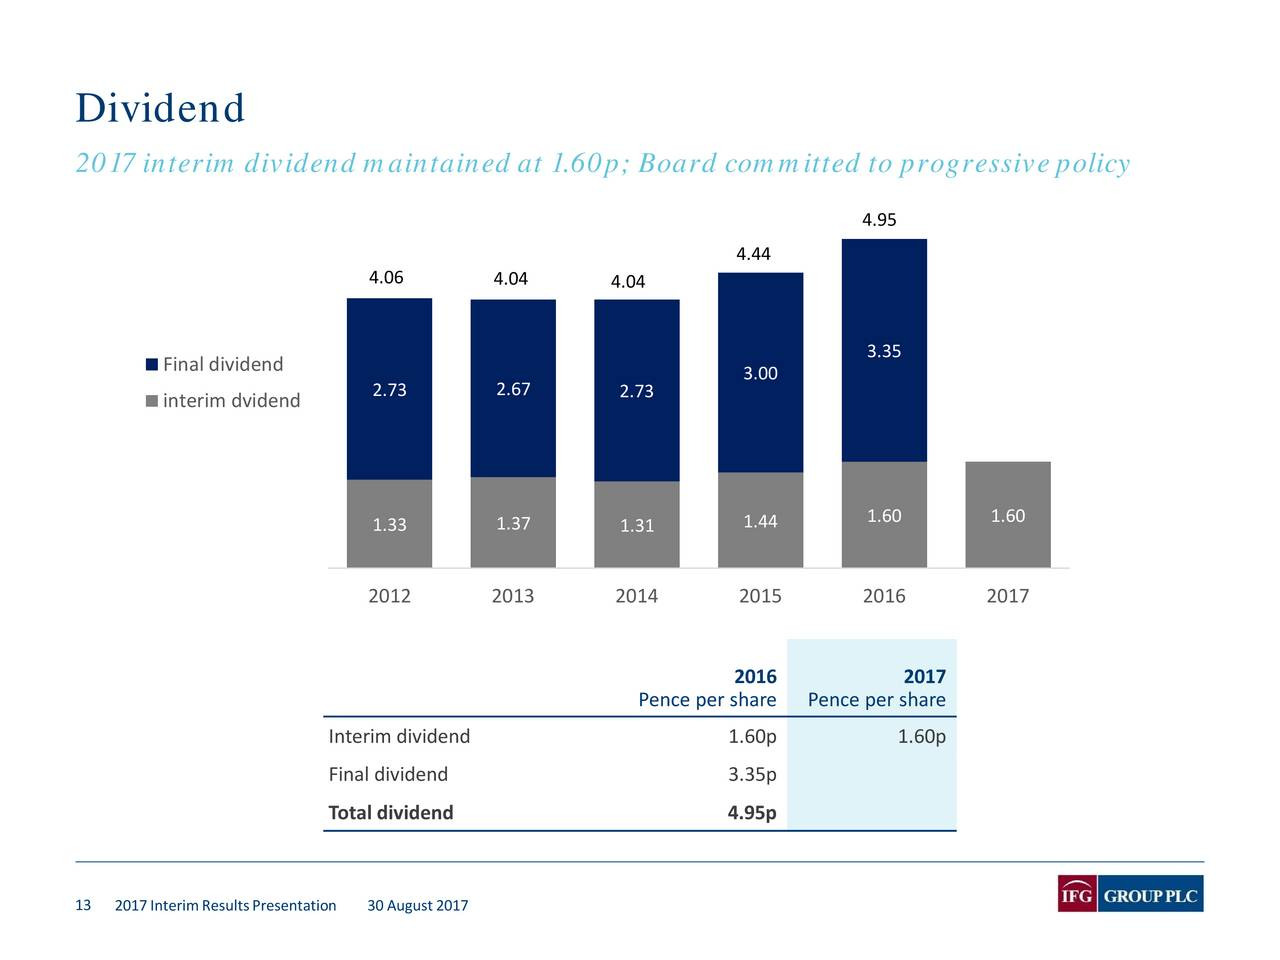 dividend policy for emi group plc Dividends are a part of a company's profit, passed to its shareholders the payment per share may vary, as it depends on overall profitability and plans for future expansion.